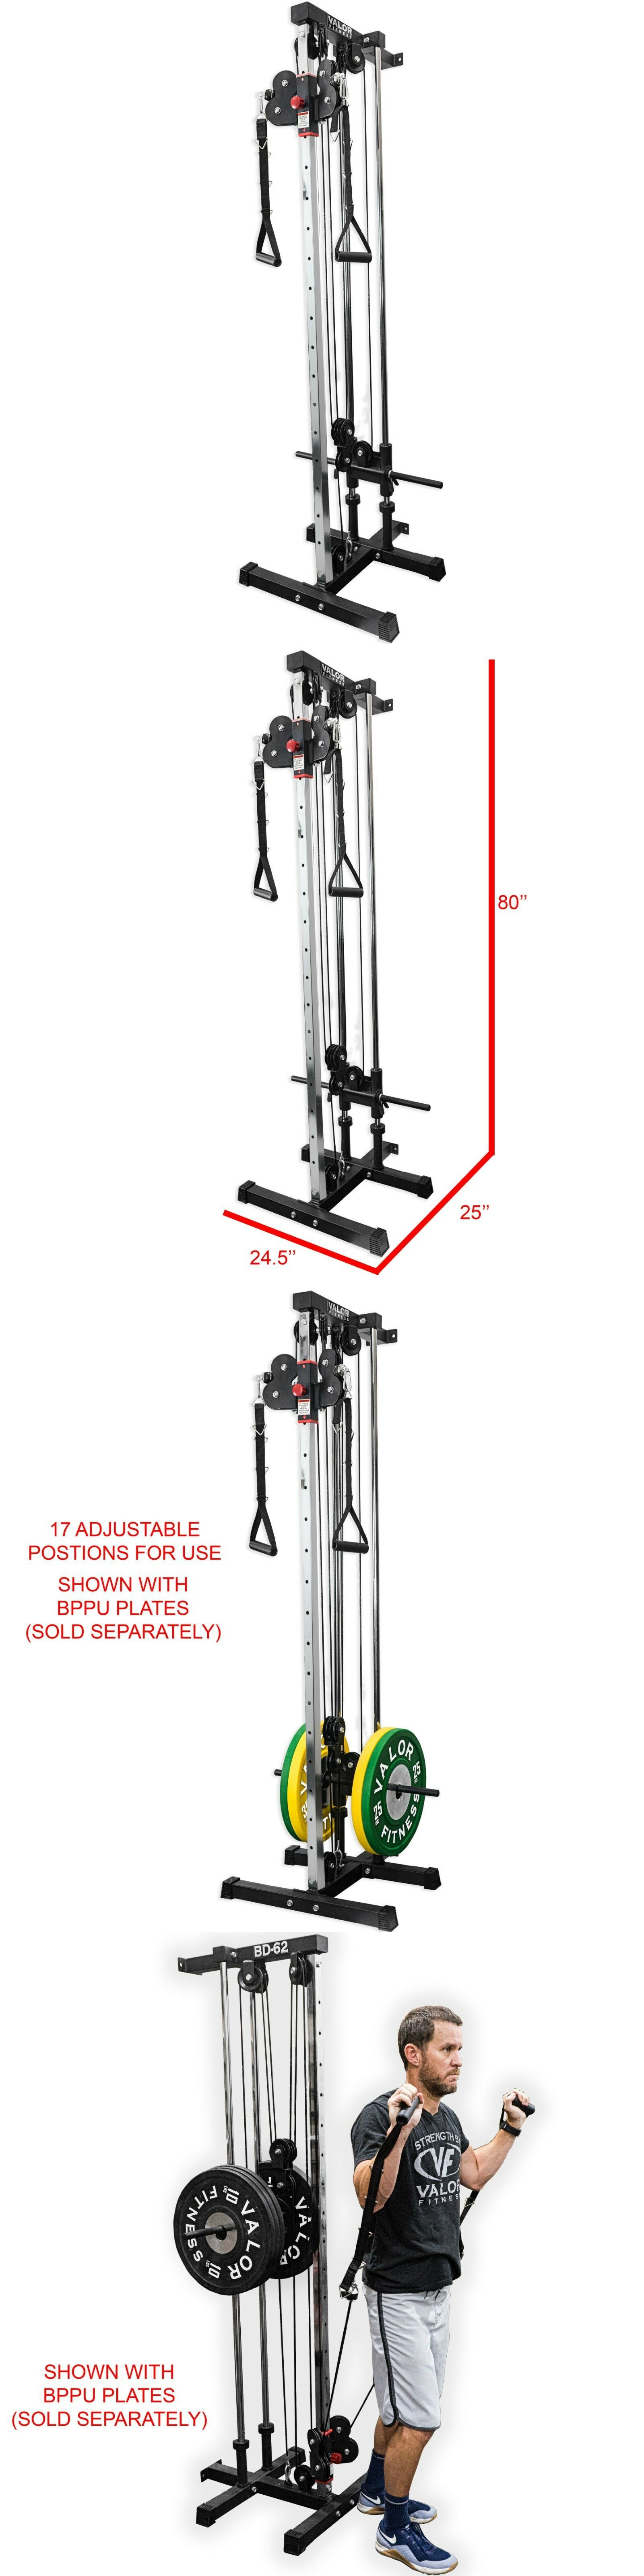 Valor Fitness Bd 62 Wall Mount Cable Station With Adjustable Dual Pulley System At Home Gym Pulley No Equipment Workout